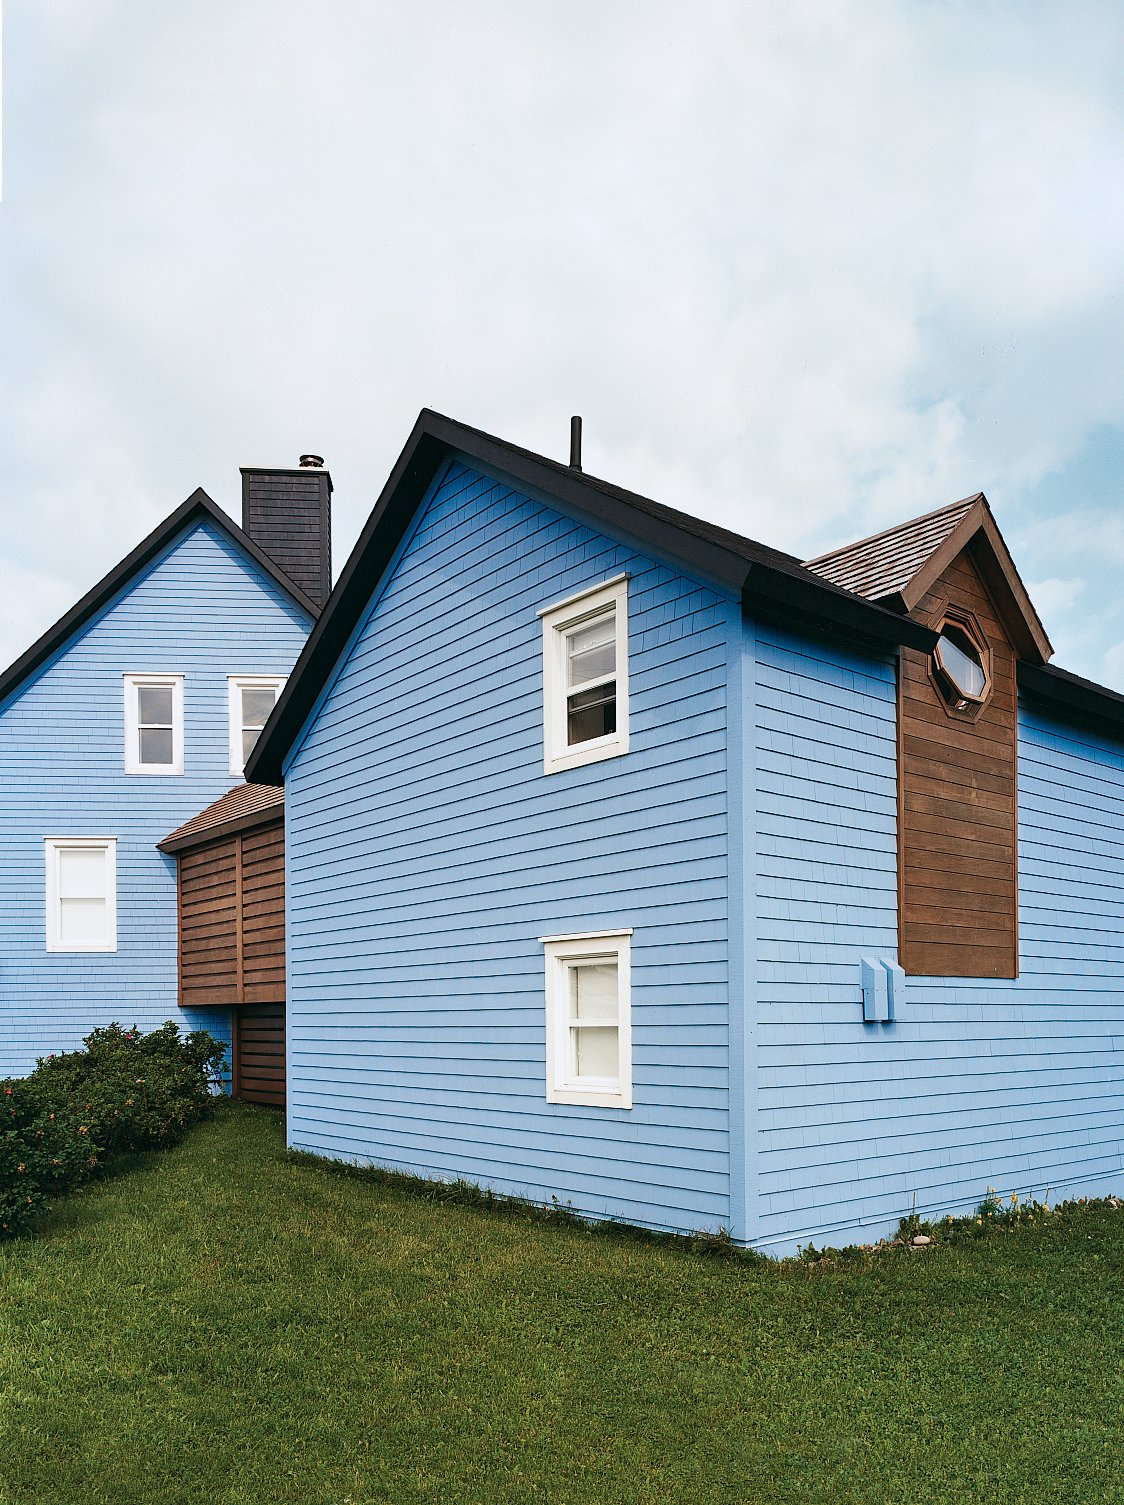 #color #exterior #outdoor #modern #modernarchitecture #paint #MagdalenIsland #Canada #YH2  Photo by Matthew Monteith  36+ Interior Color Pop Ideas For Modern Homes by Dwell